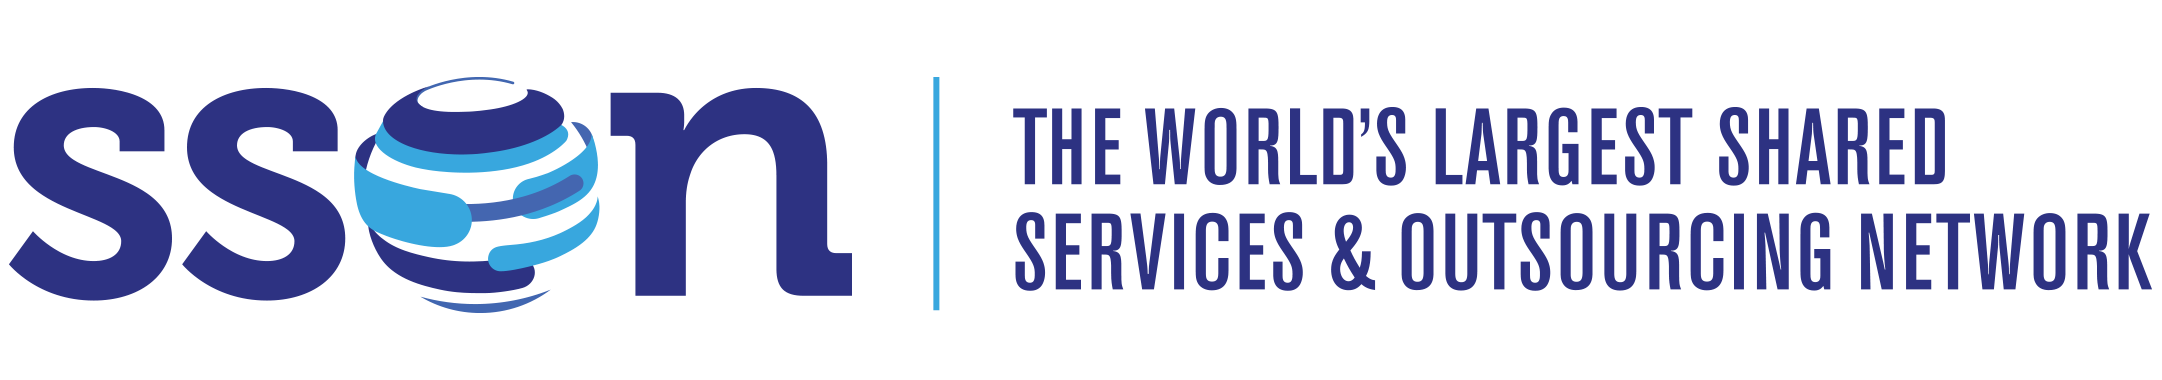 The Shared Services & Outsourcing Network (SSON)